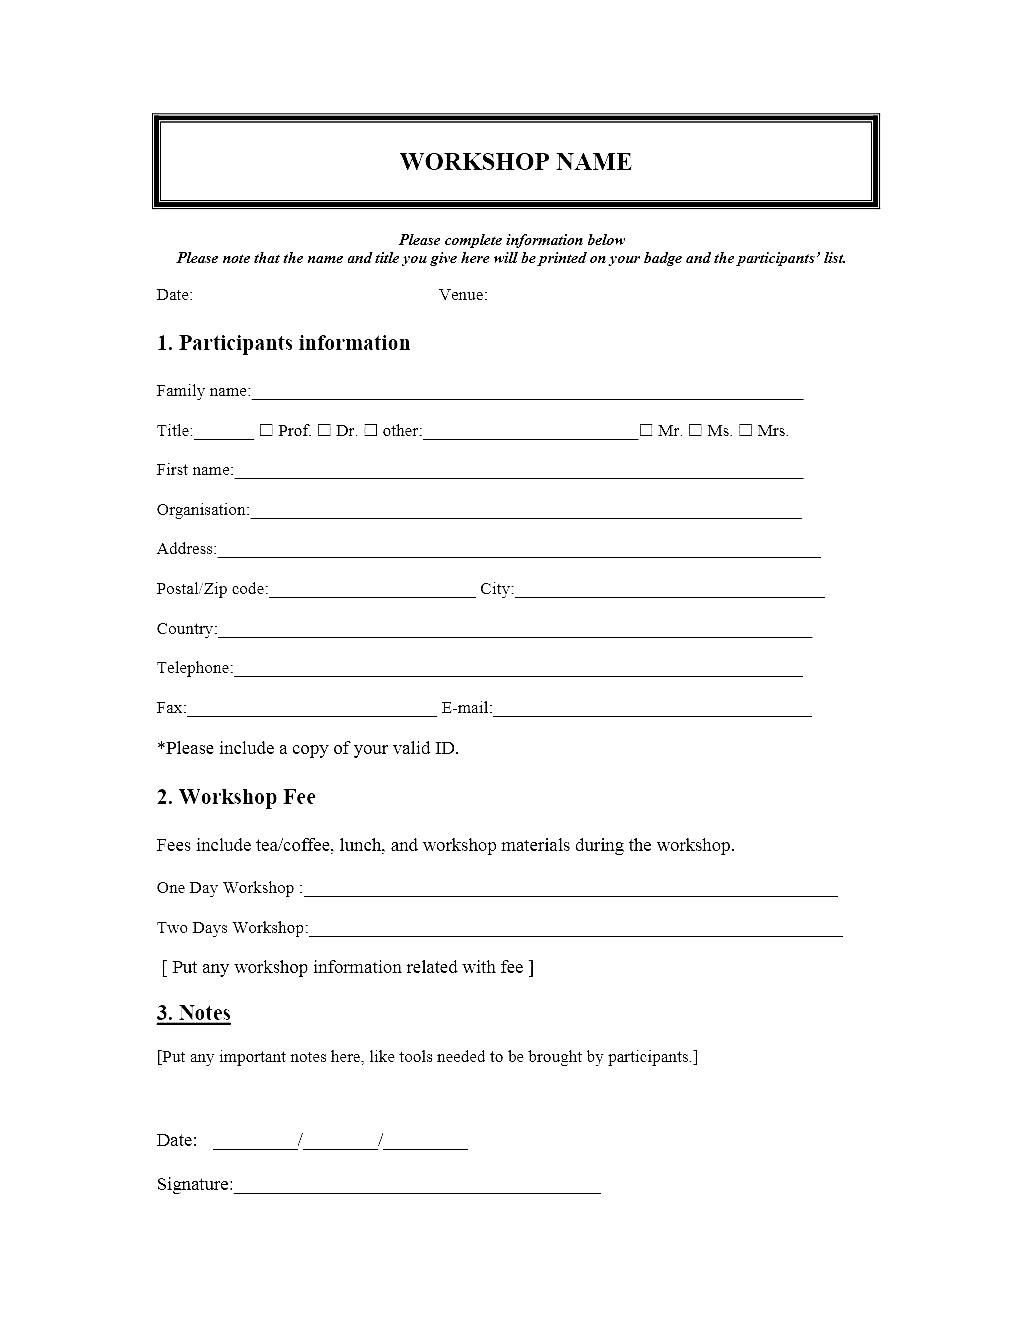 Registration form Template Free Download event Registration form Template Microsoft Word